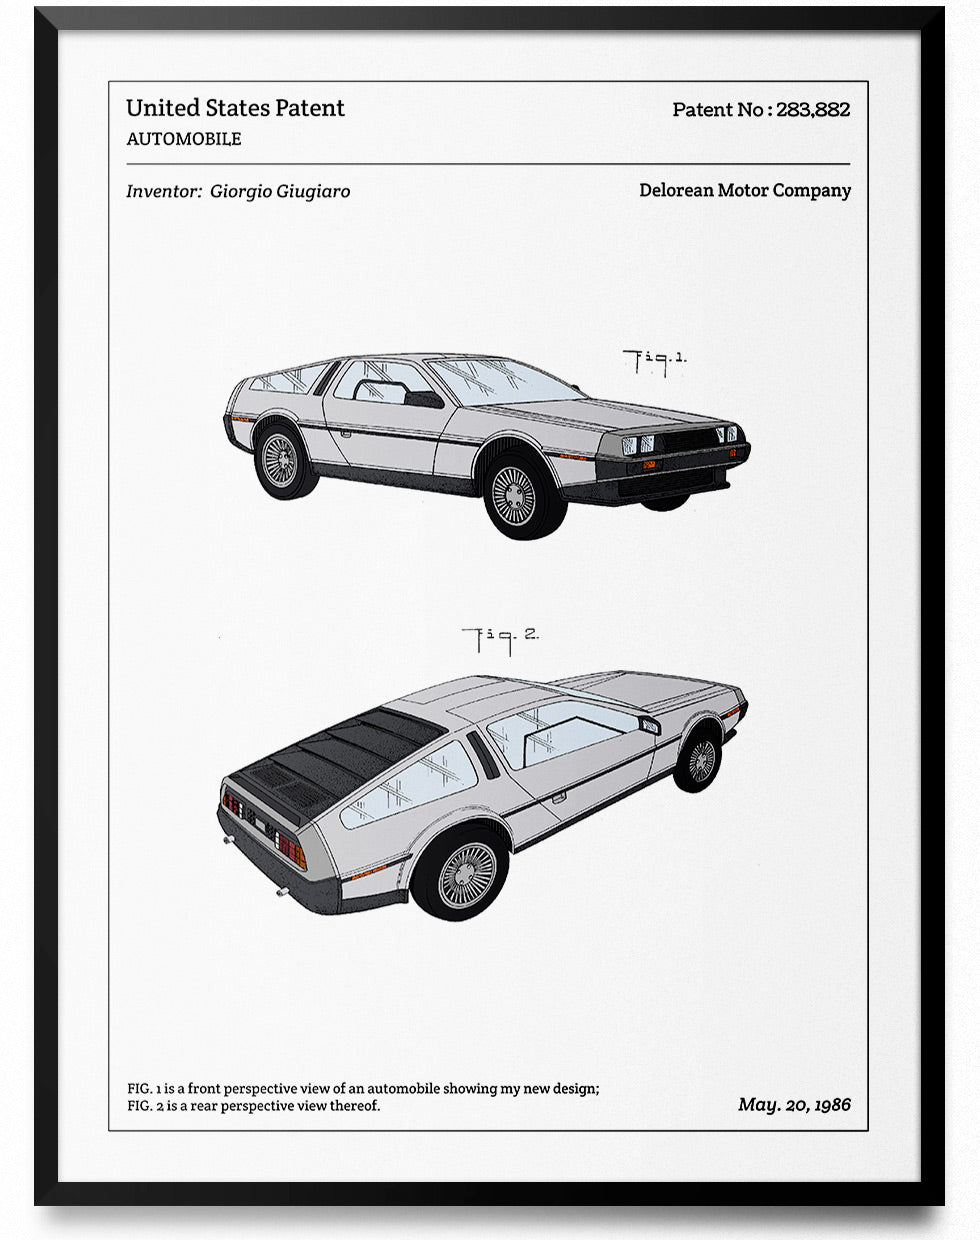 Affiche de brevet - Delorean - L'Affiche Technique